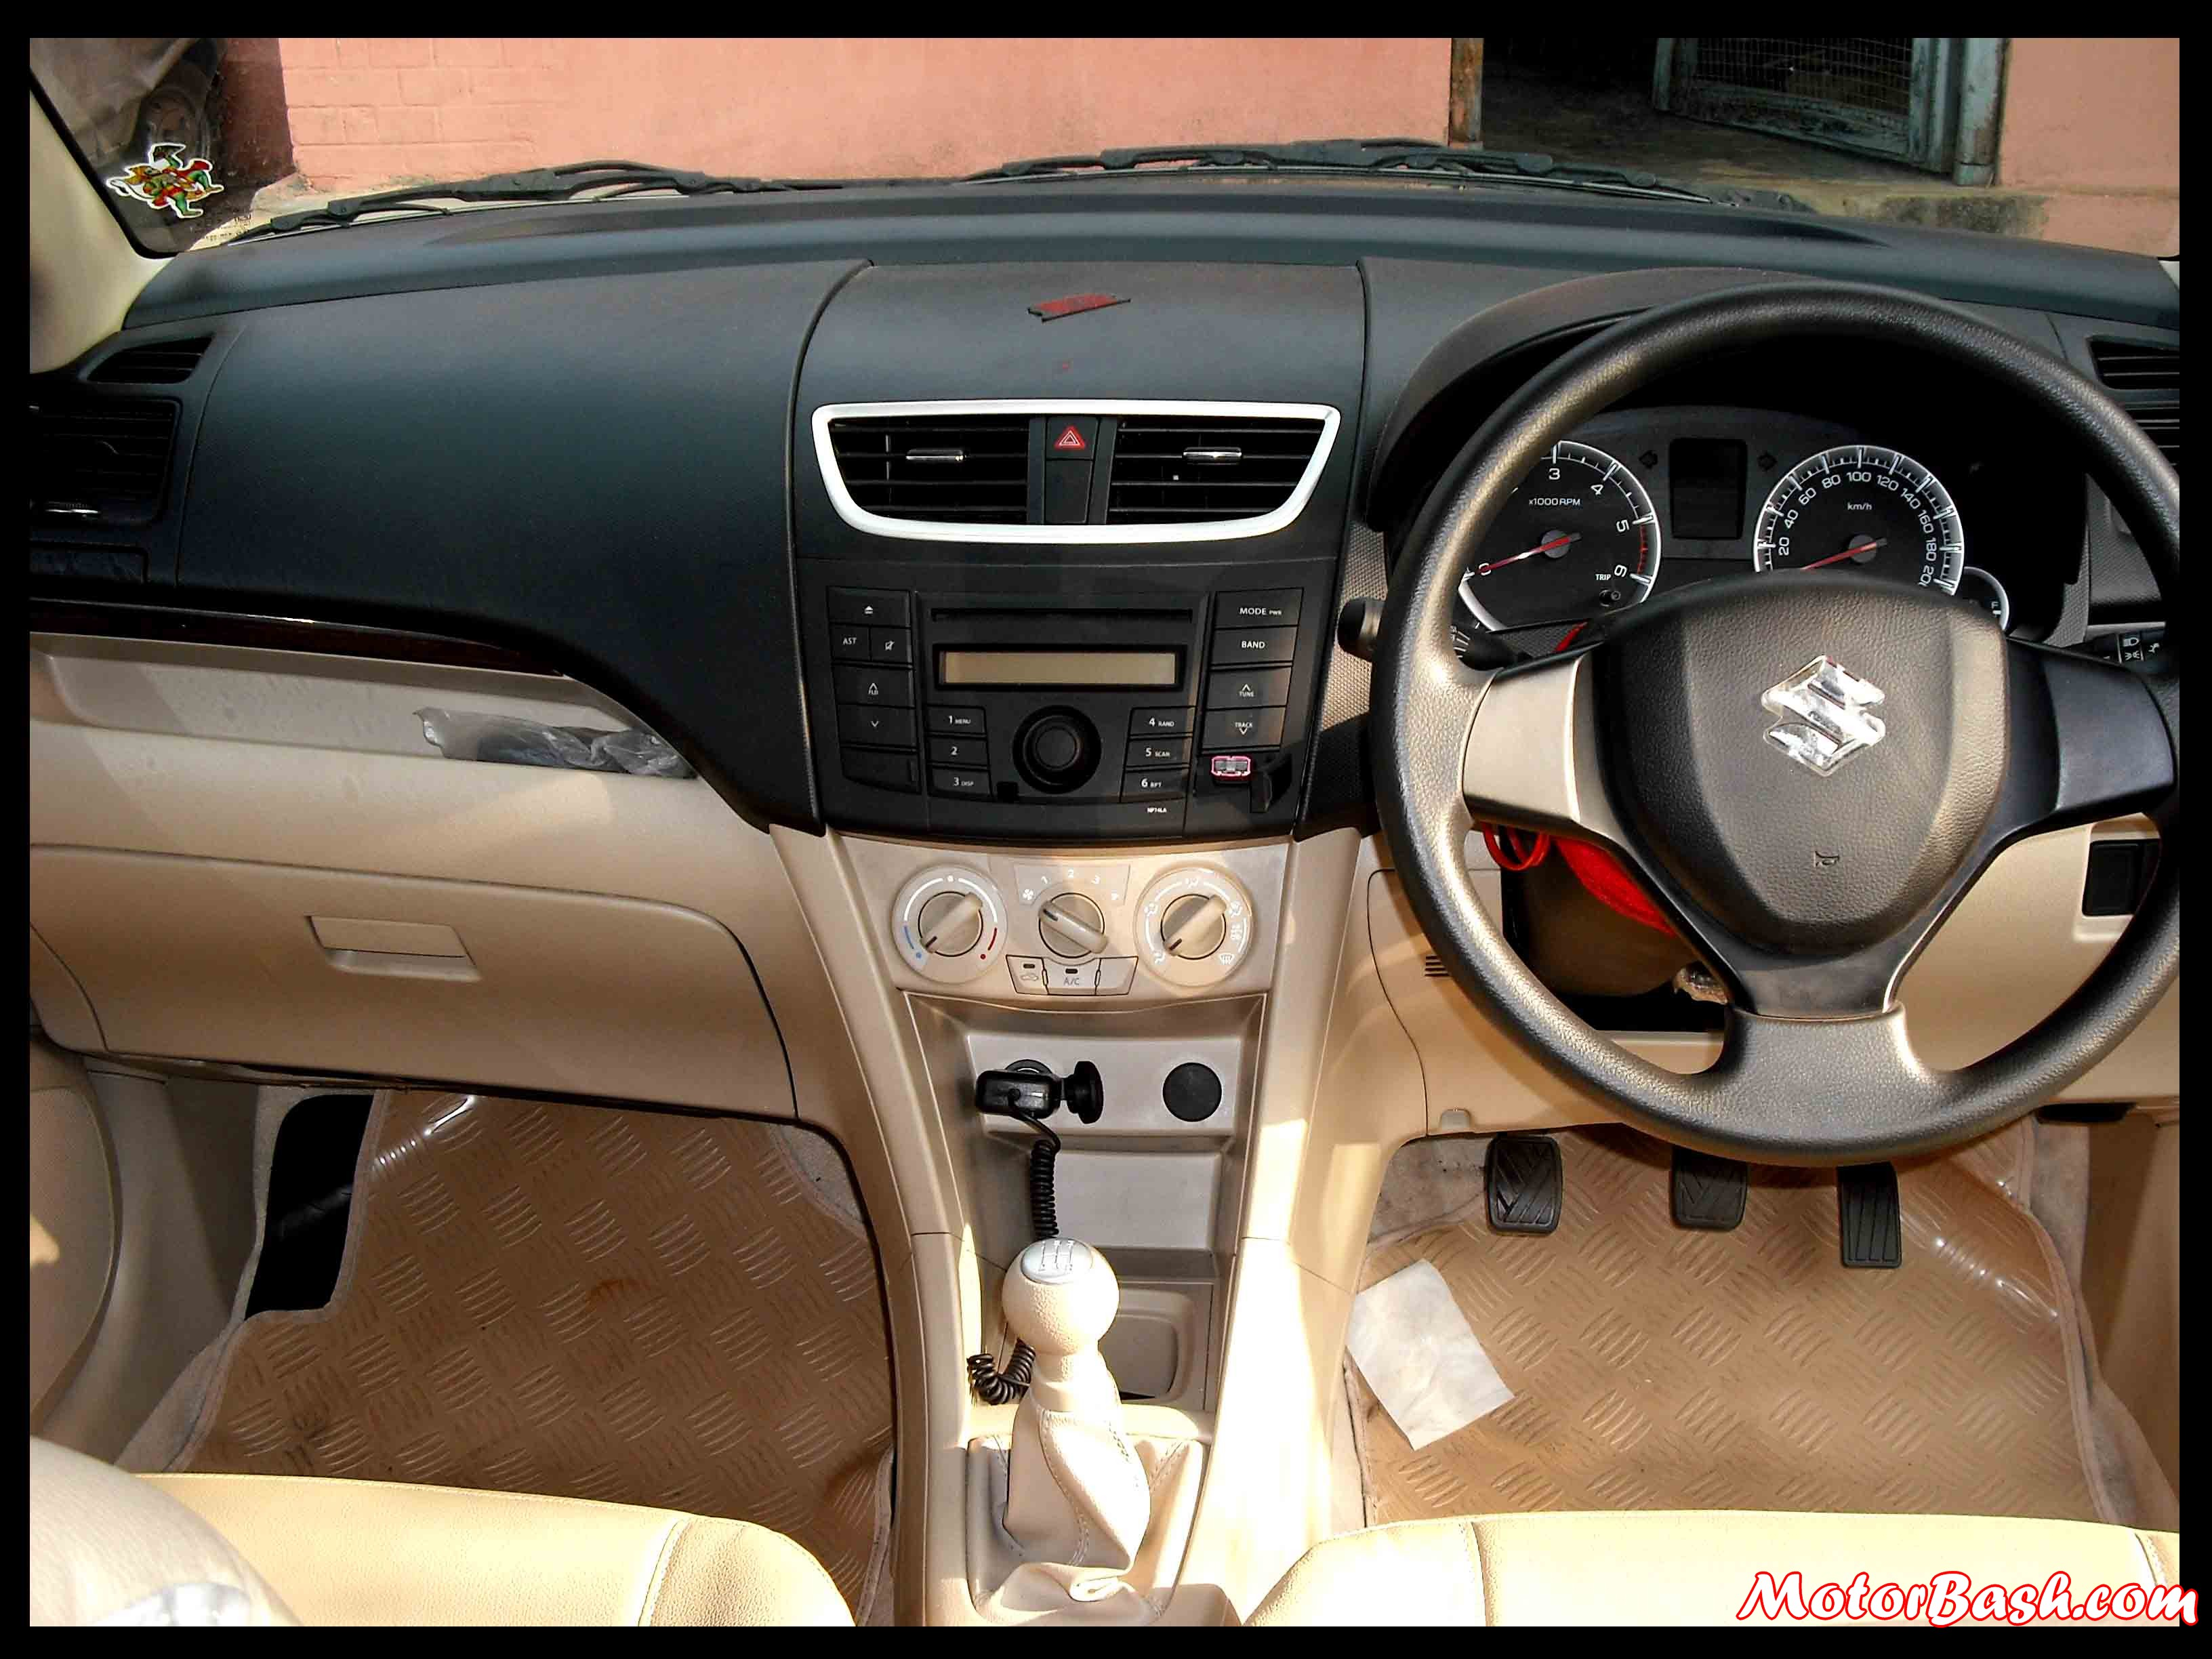 Maruti Suzuki DZire CS MotorBash 5 new 2012 maruti suzuki dzire vdi comprehensive review [32 pic swift vdi wiring diagram at reclaimingppi.co